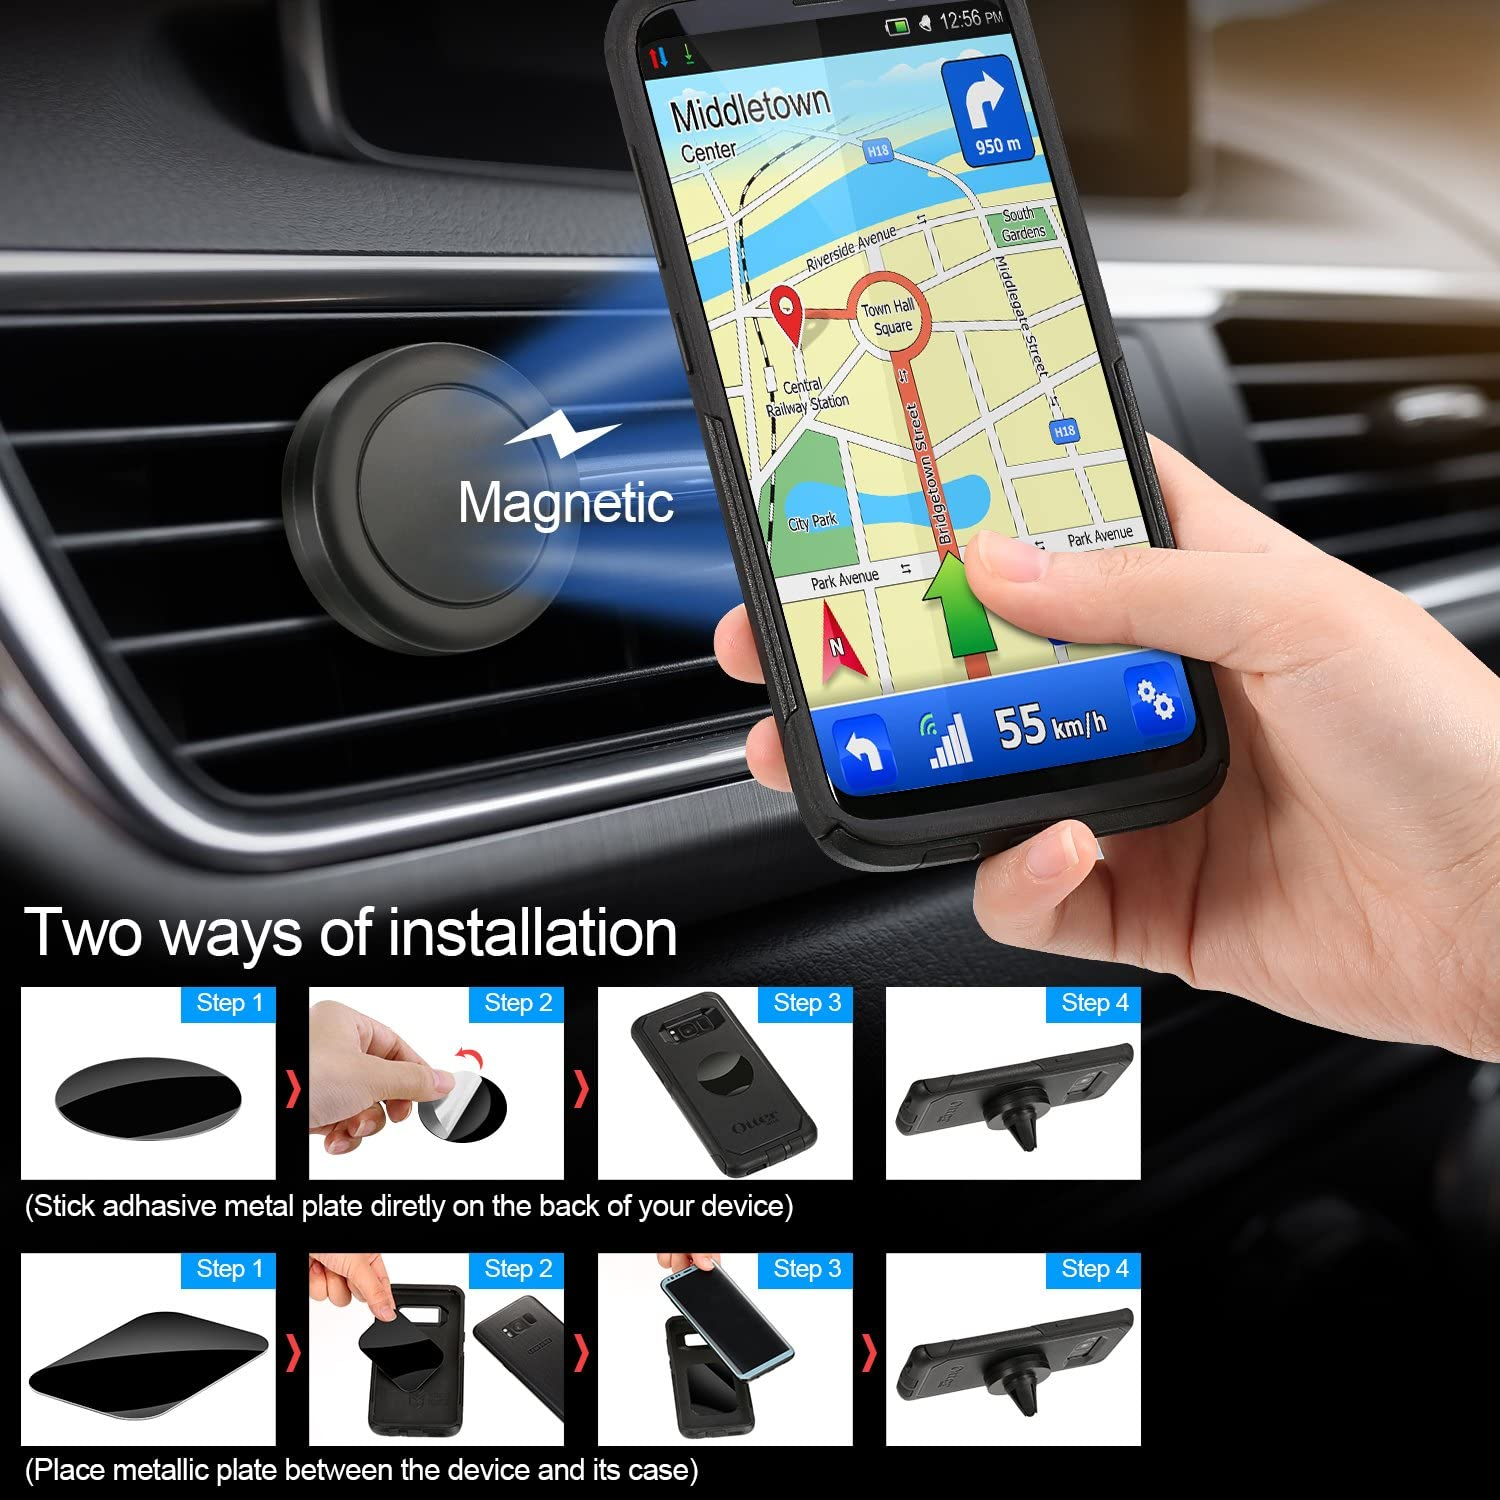 Pattern 1 5V// 3.4A Dual USB Ports Charger Compatible iPhone and Android Smartphones U-disk MP3 Player Hands-free Calling Sumind Car Bluetooth FM Transmitter FM Radio Adapter Transmitter